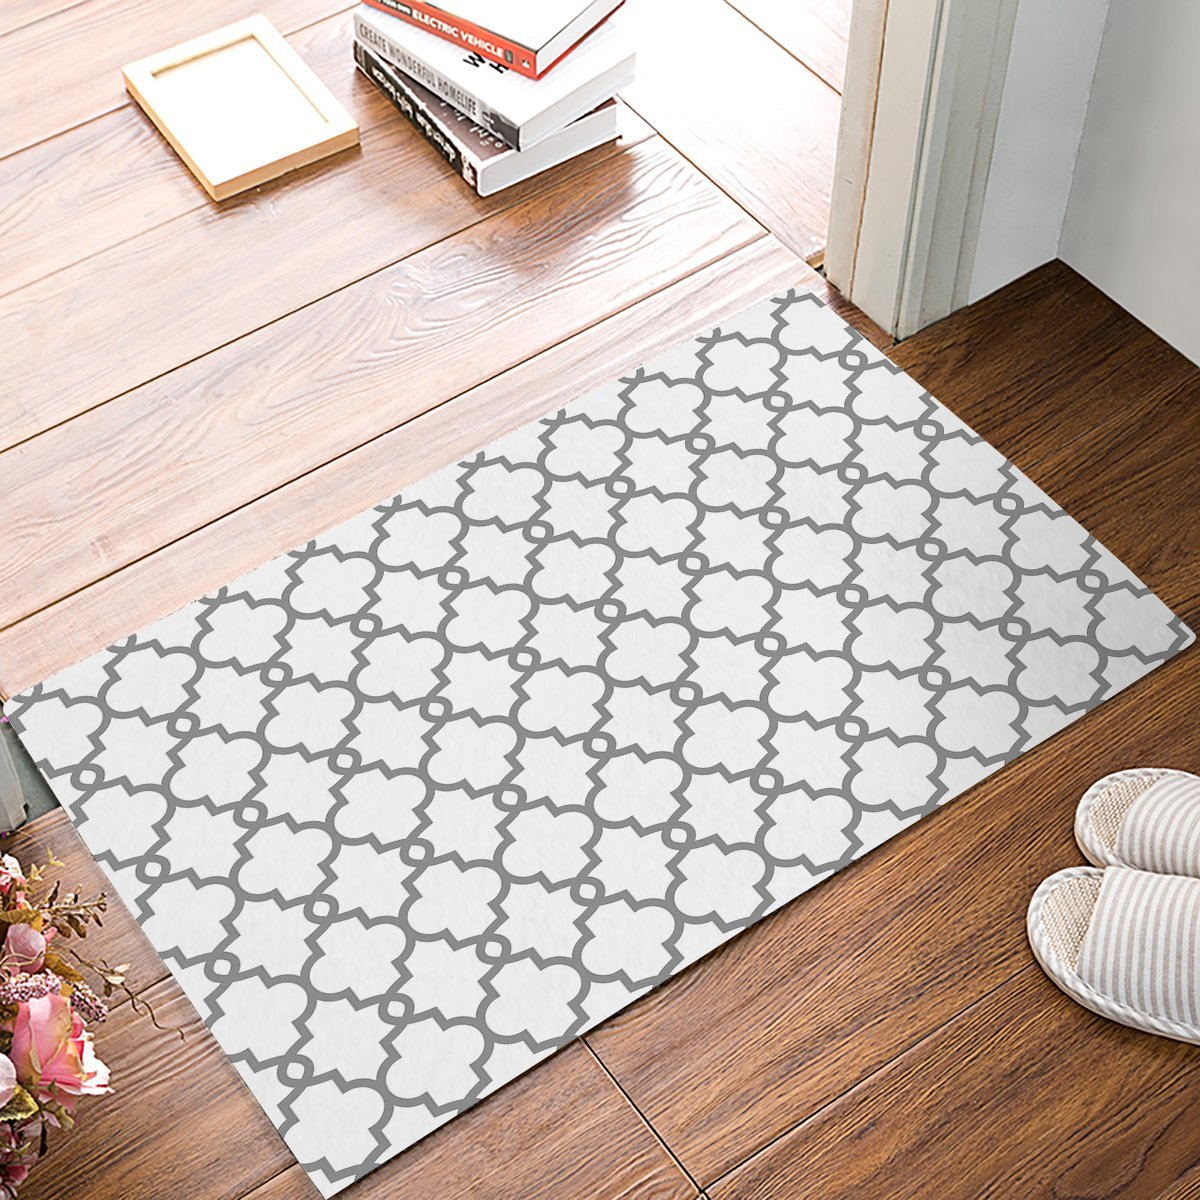 Rug Entrance Gray Moroccan Repeating Geometry Pattern